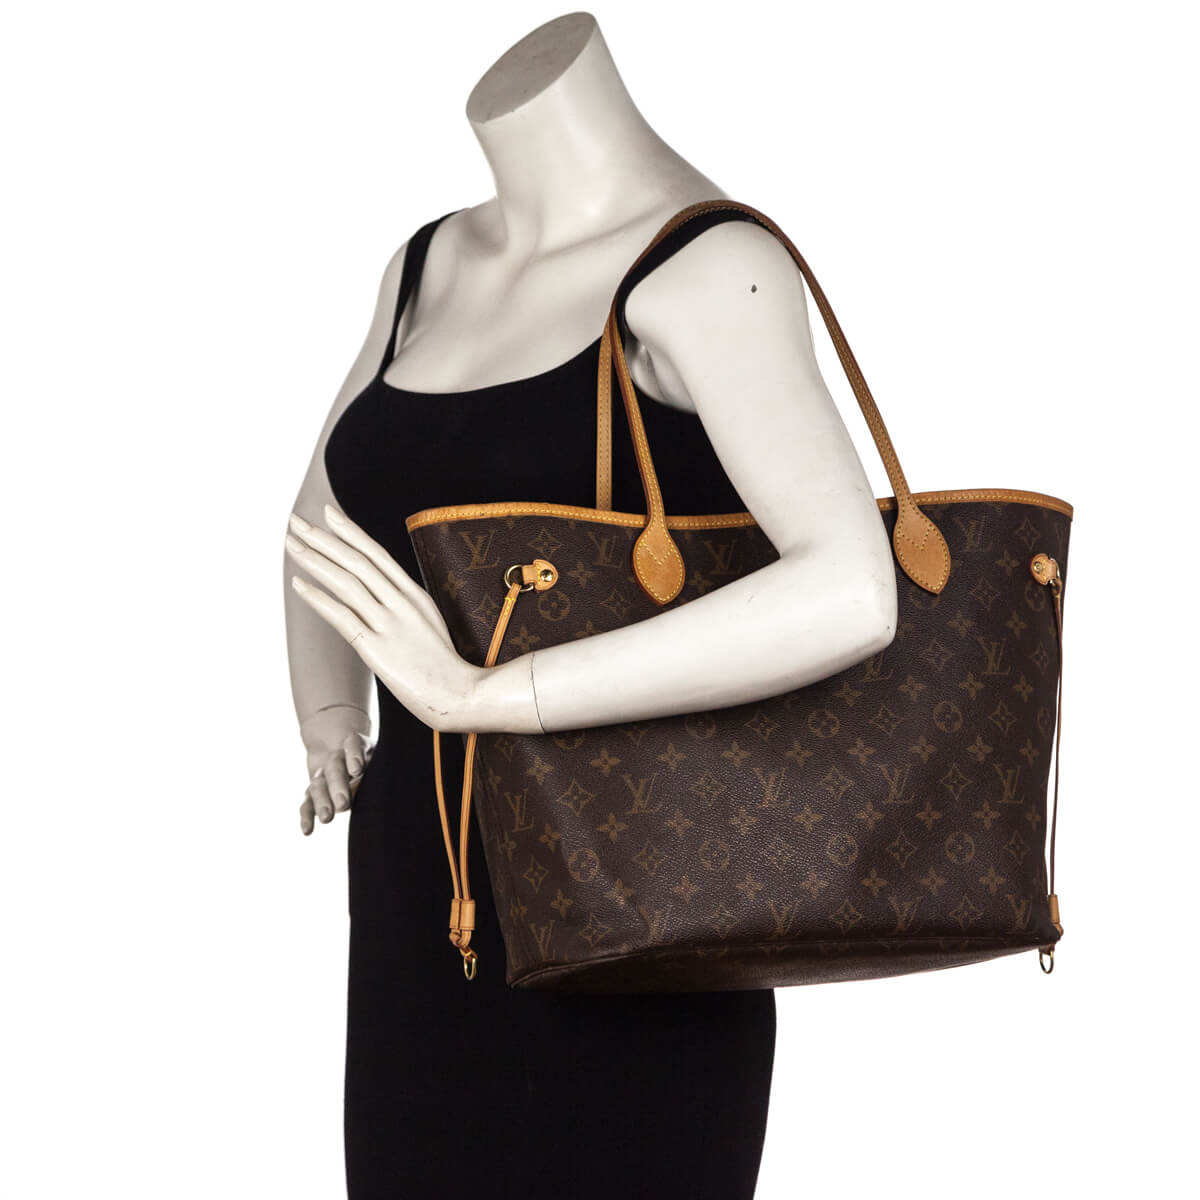 44c1278945da ... Louis Vuitton Monogram Neverfull MM - LOVE that BAG - Preowned  Authentic Designer Handbags